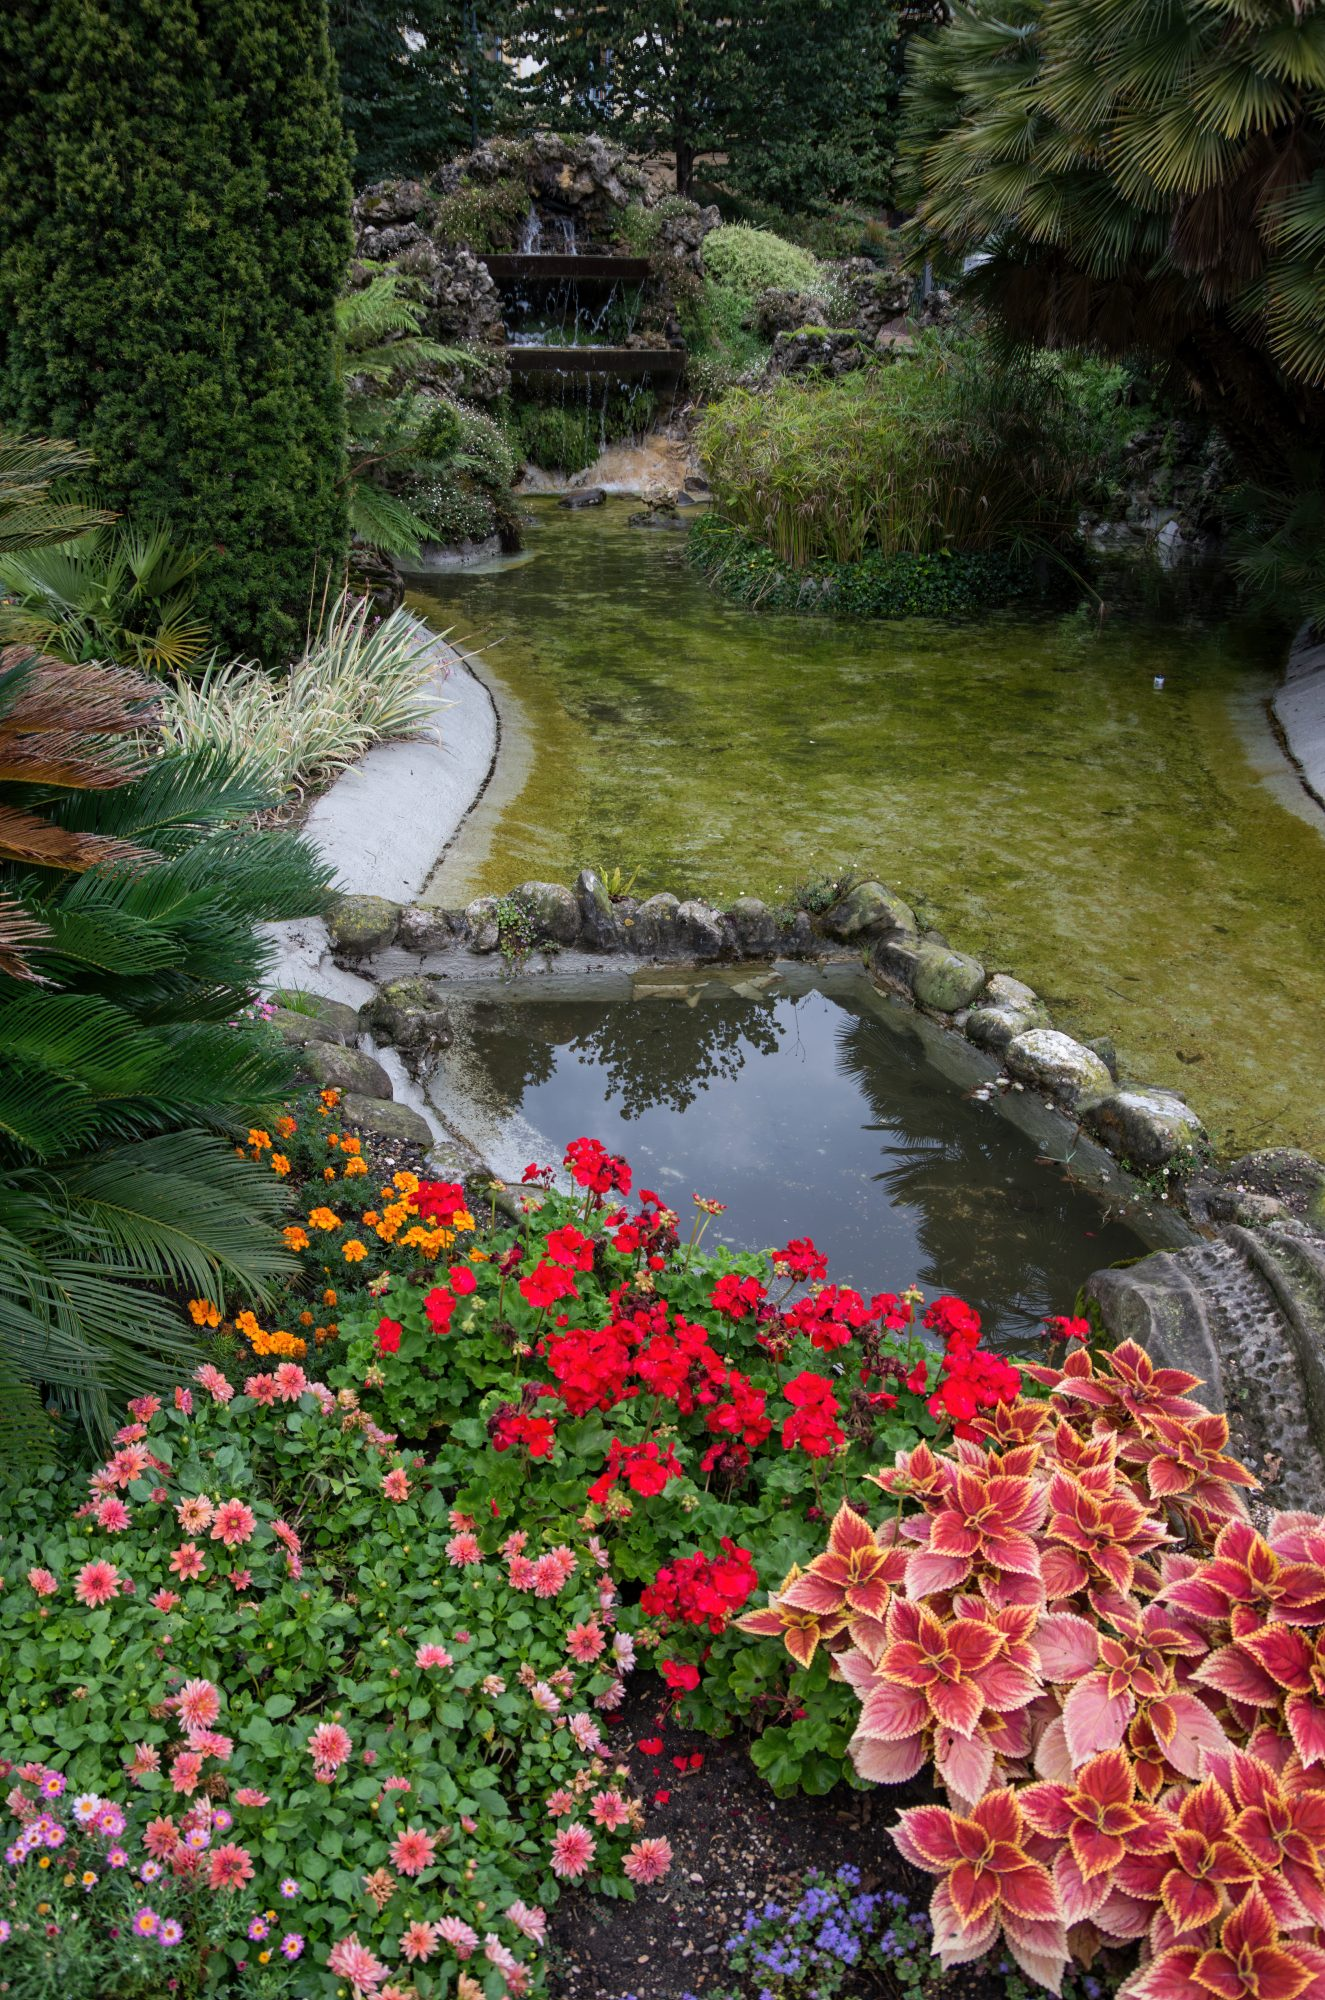 Spanish garden with stone and rock accents, with flowers in foreground